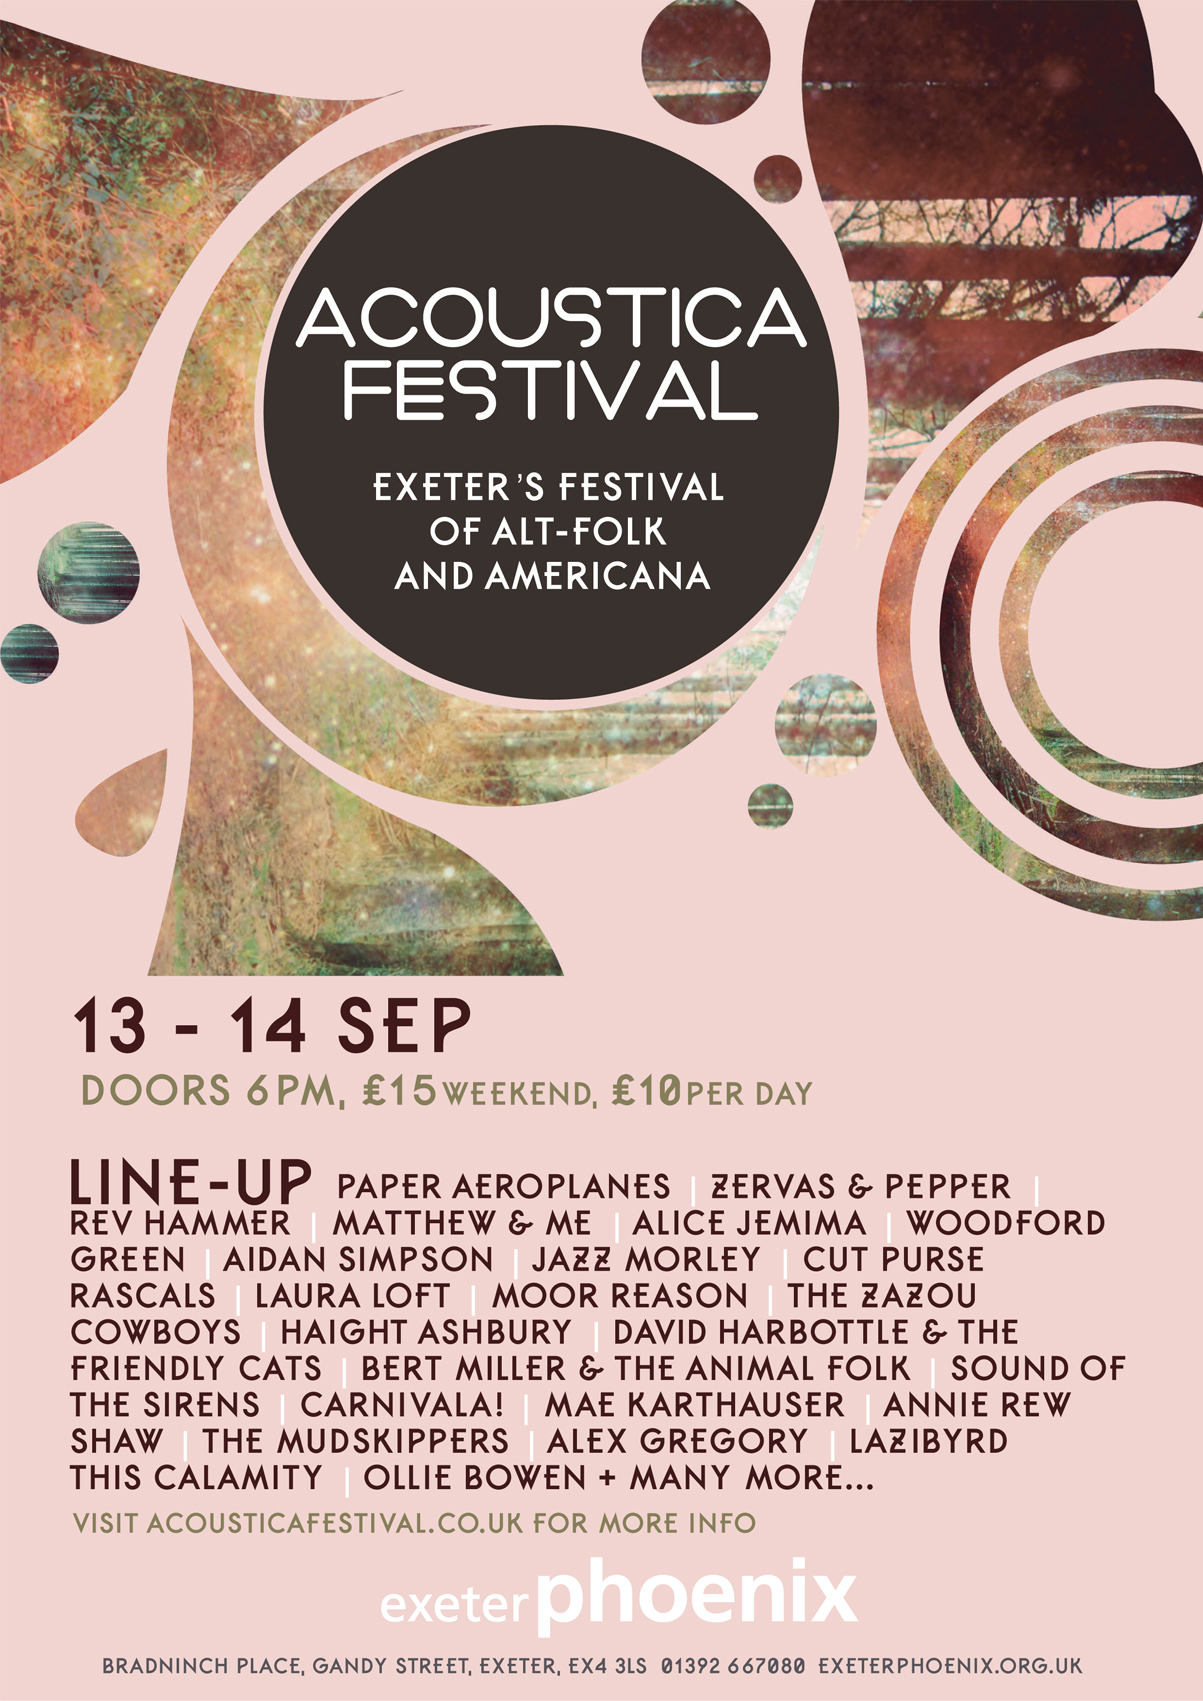 Sound Launch join YSSC to play at Acoustica Festival – lofts music shed